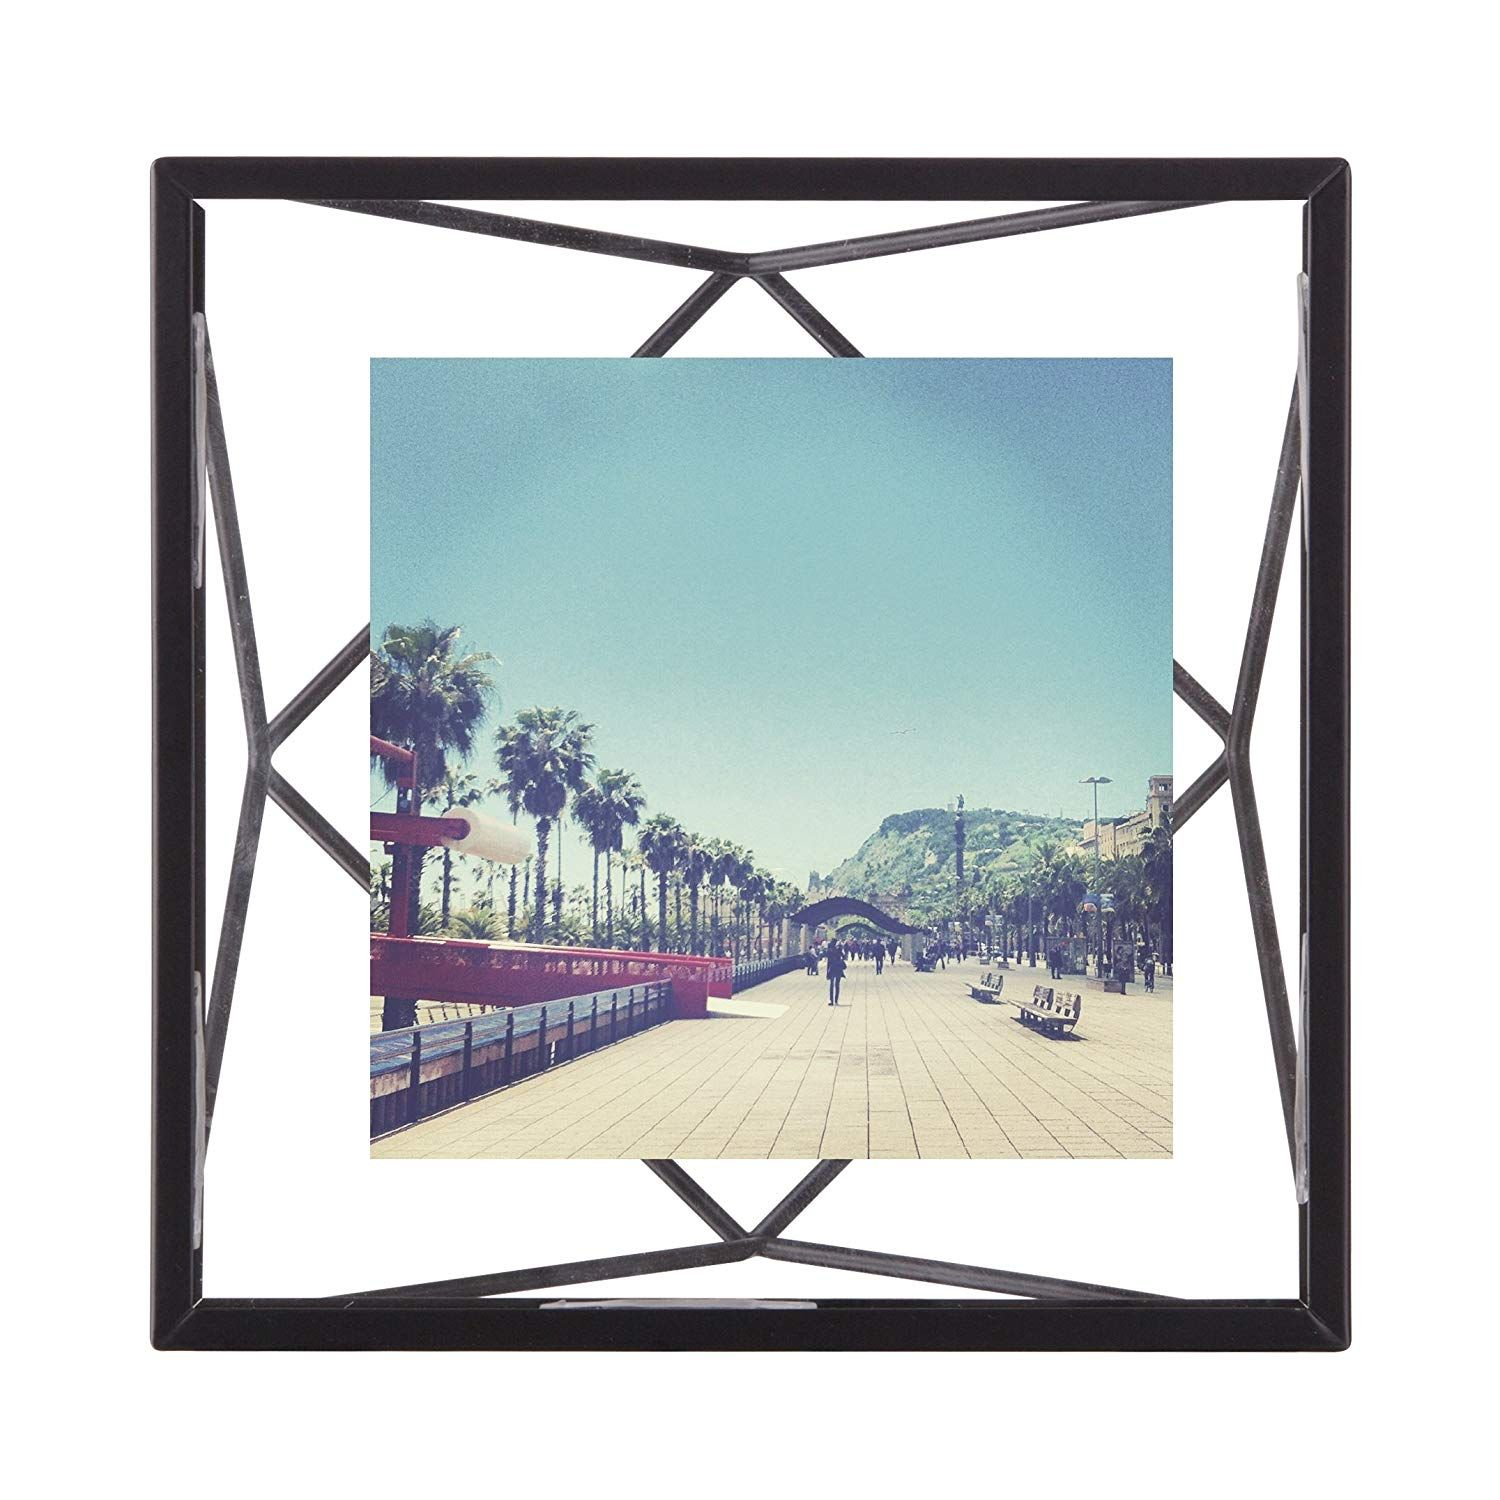 Umbra Prisma Picture Frame 4 By 4 Inch Black Multi